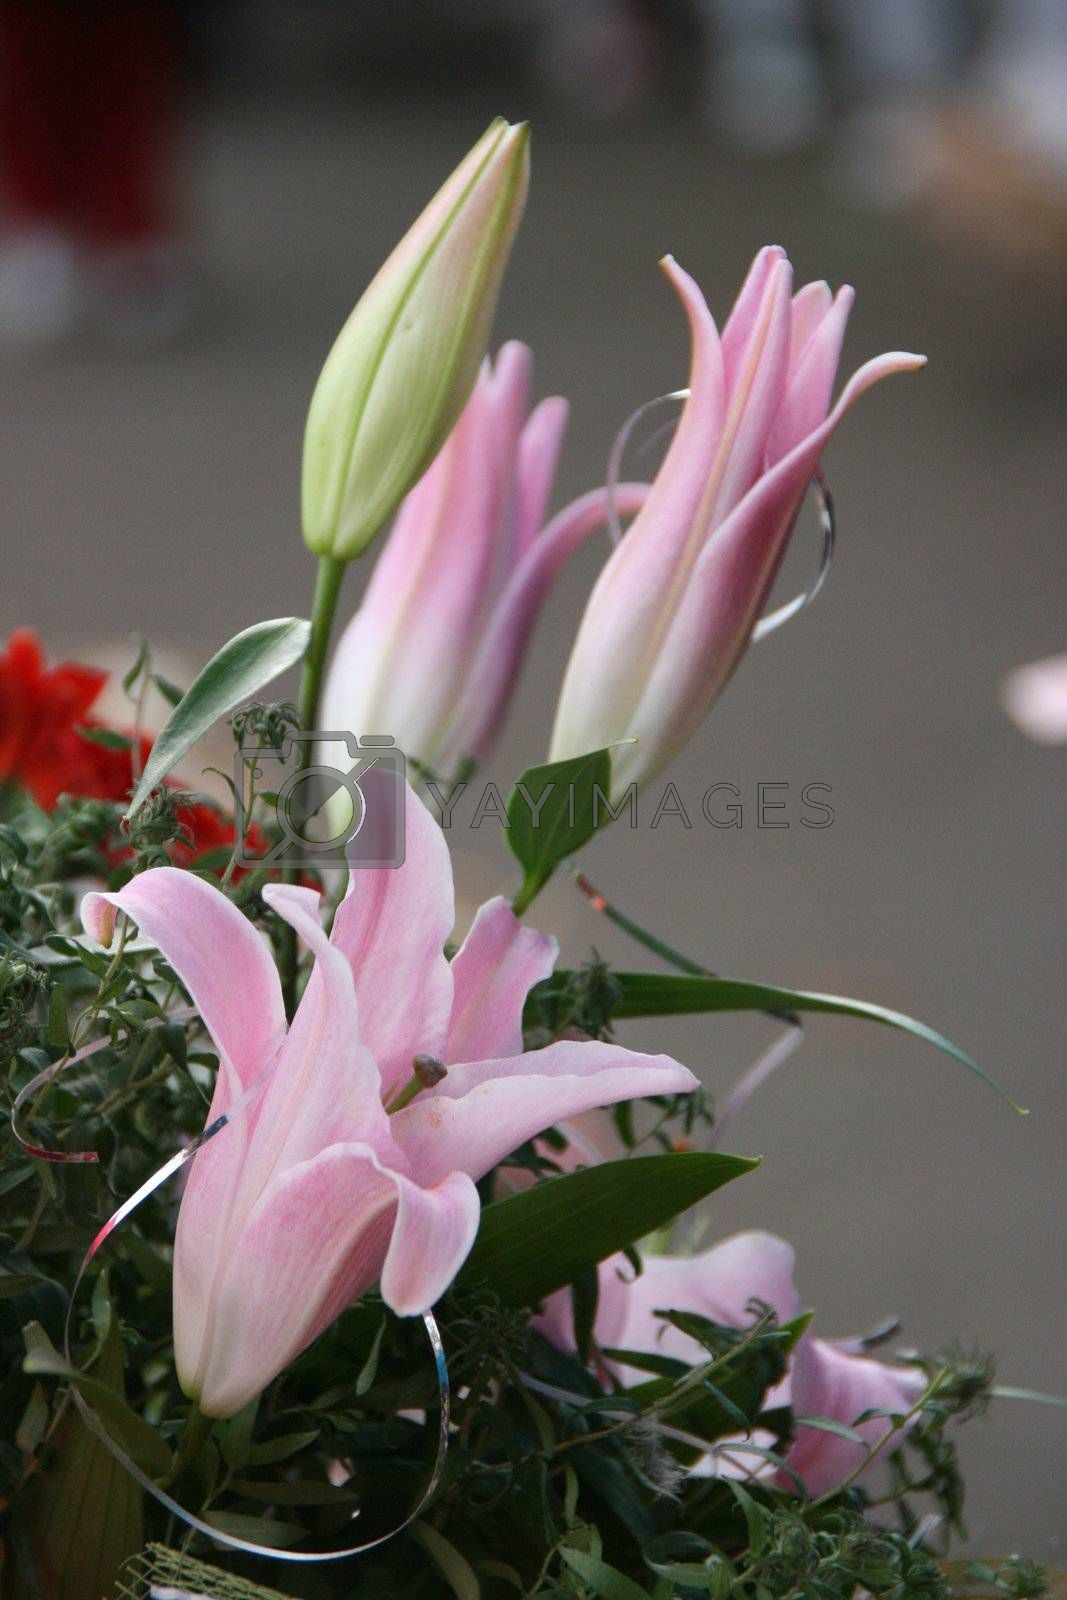 detailed close-up of vivid fresh lilly flowers